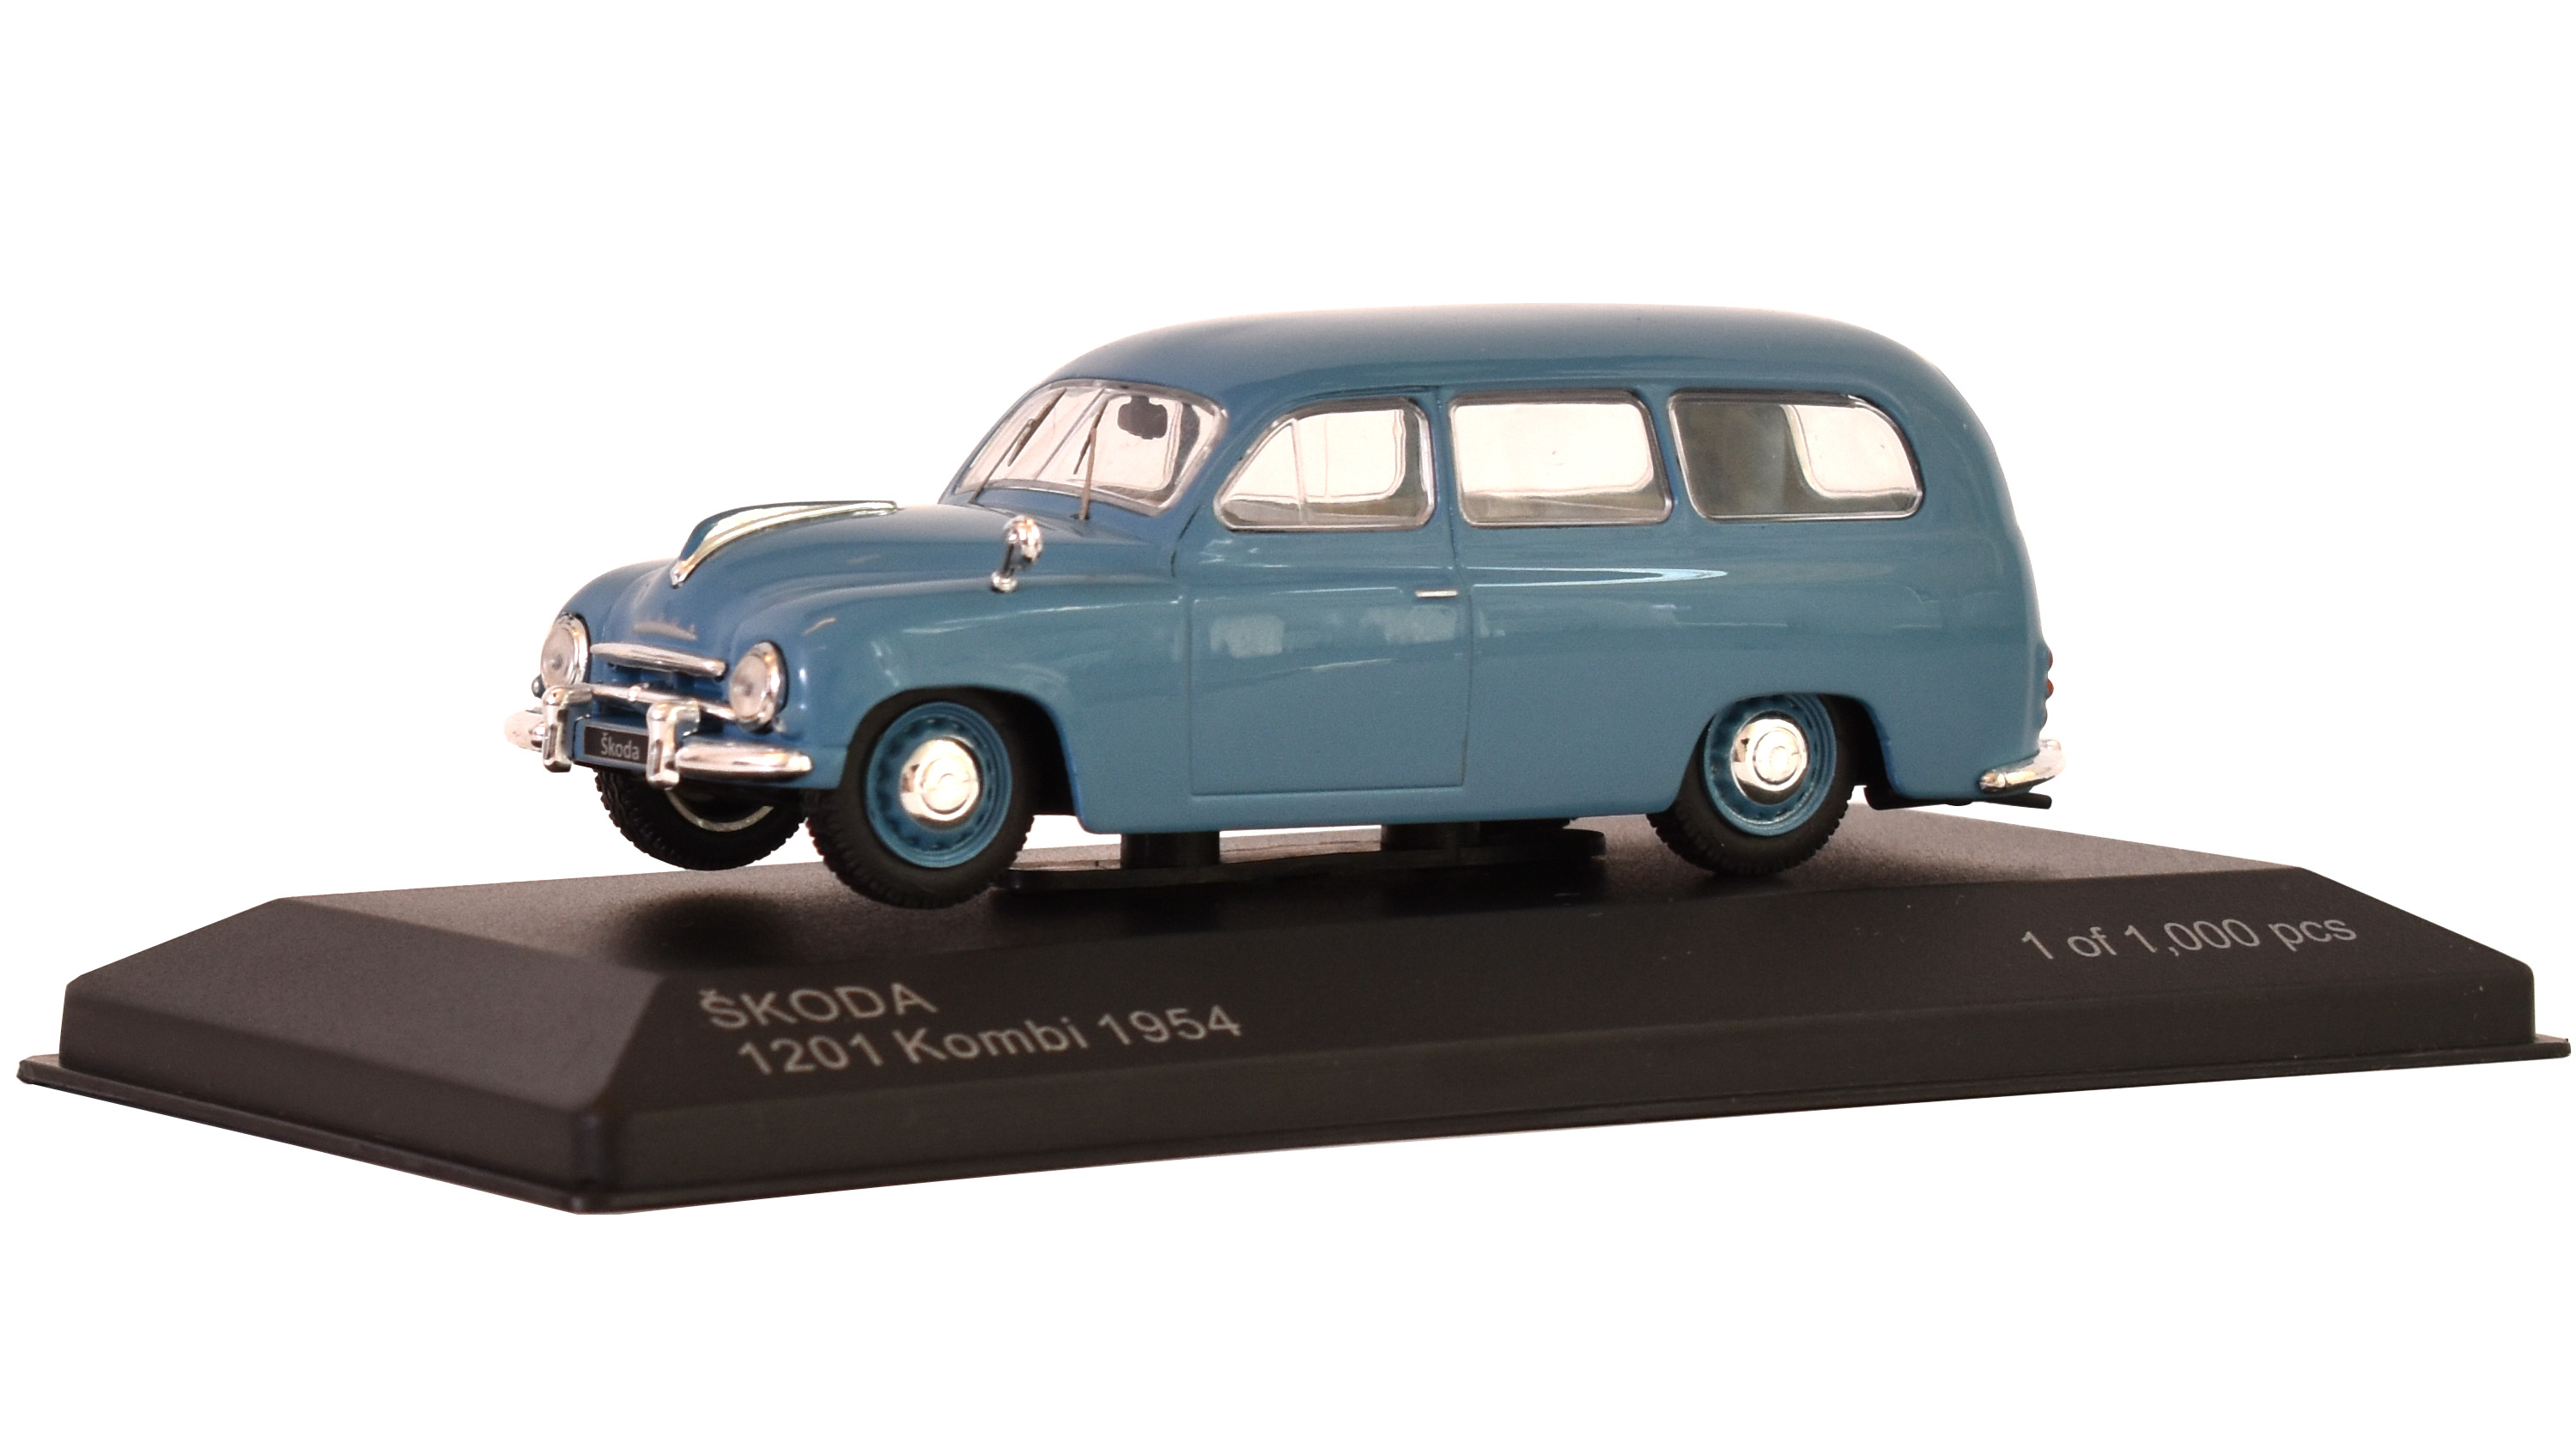 Škoda 1201 Kombi, 1954 1:43 - WhiteBox časopis AutoModels s modelem